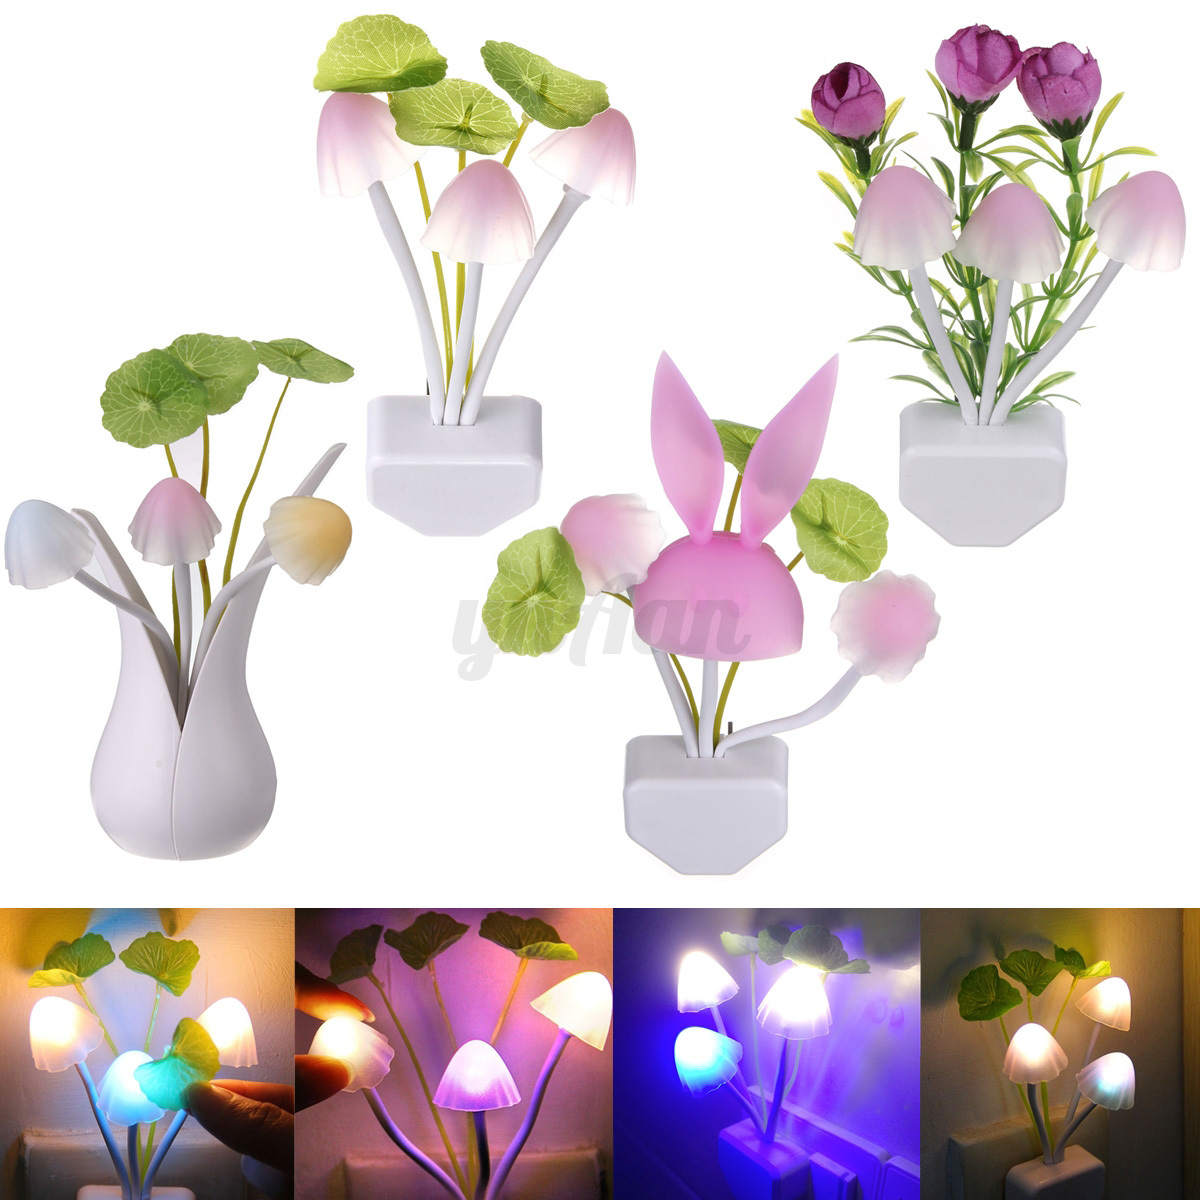 led nachtlicht lampe notlicht sensor licht wand leuchte steckdose baby kinder bo ebay. Black Bedroom Furniture Sets. Home Design Ideas